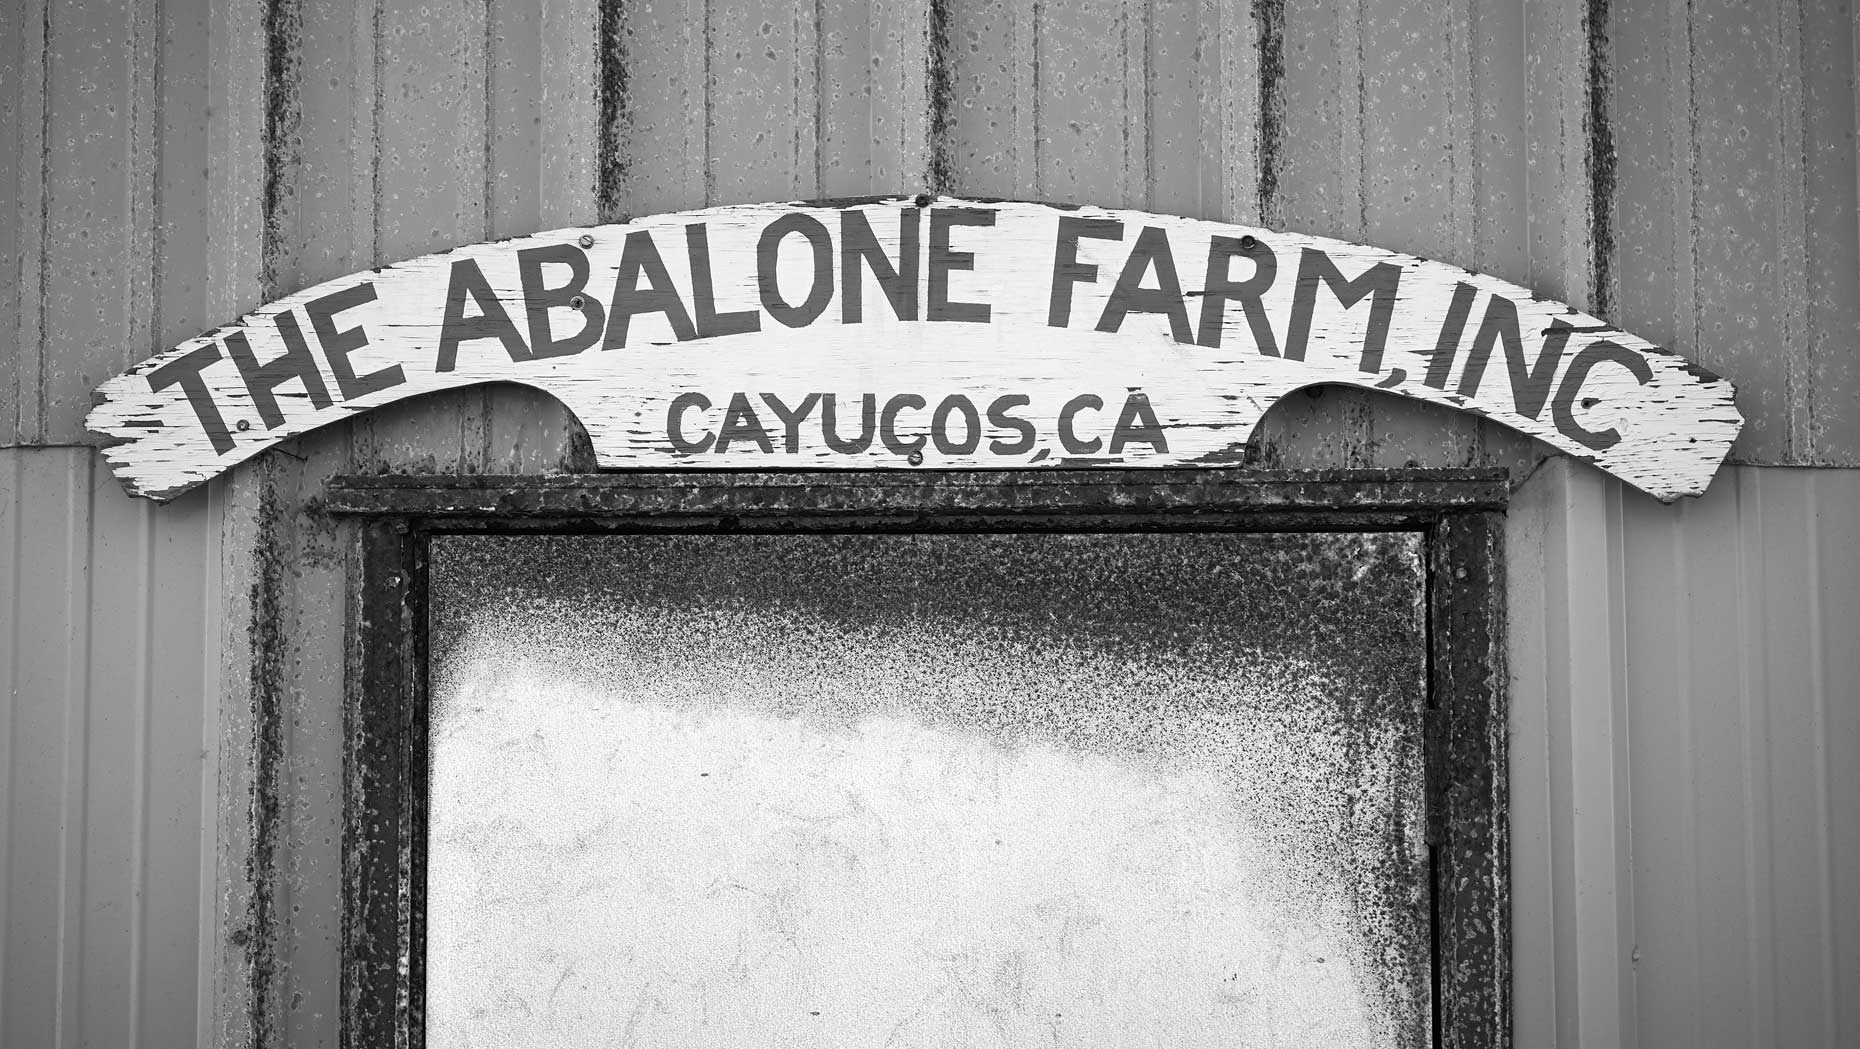 Abalone Farm Sign